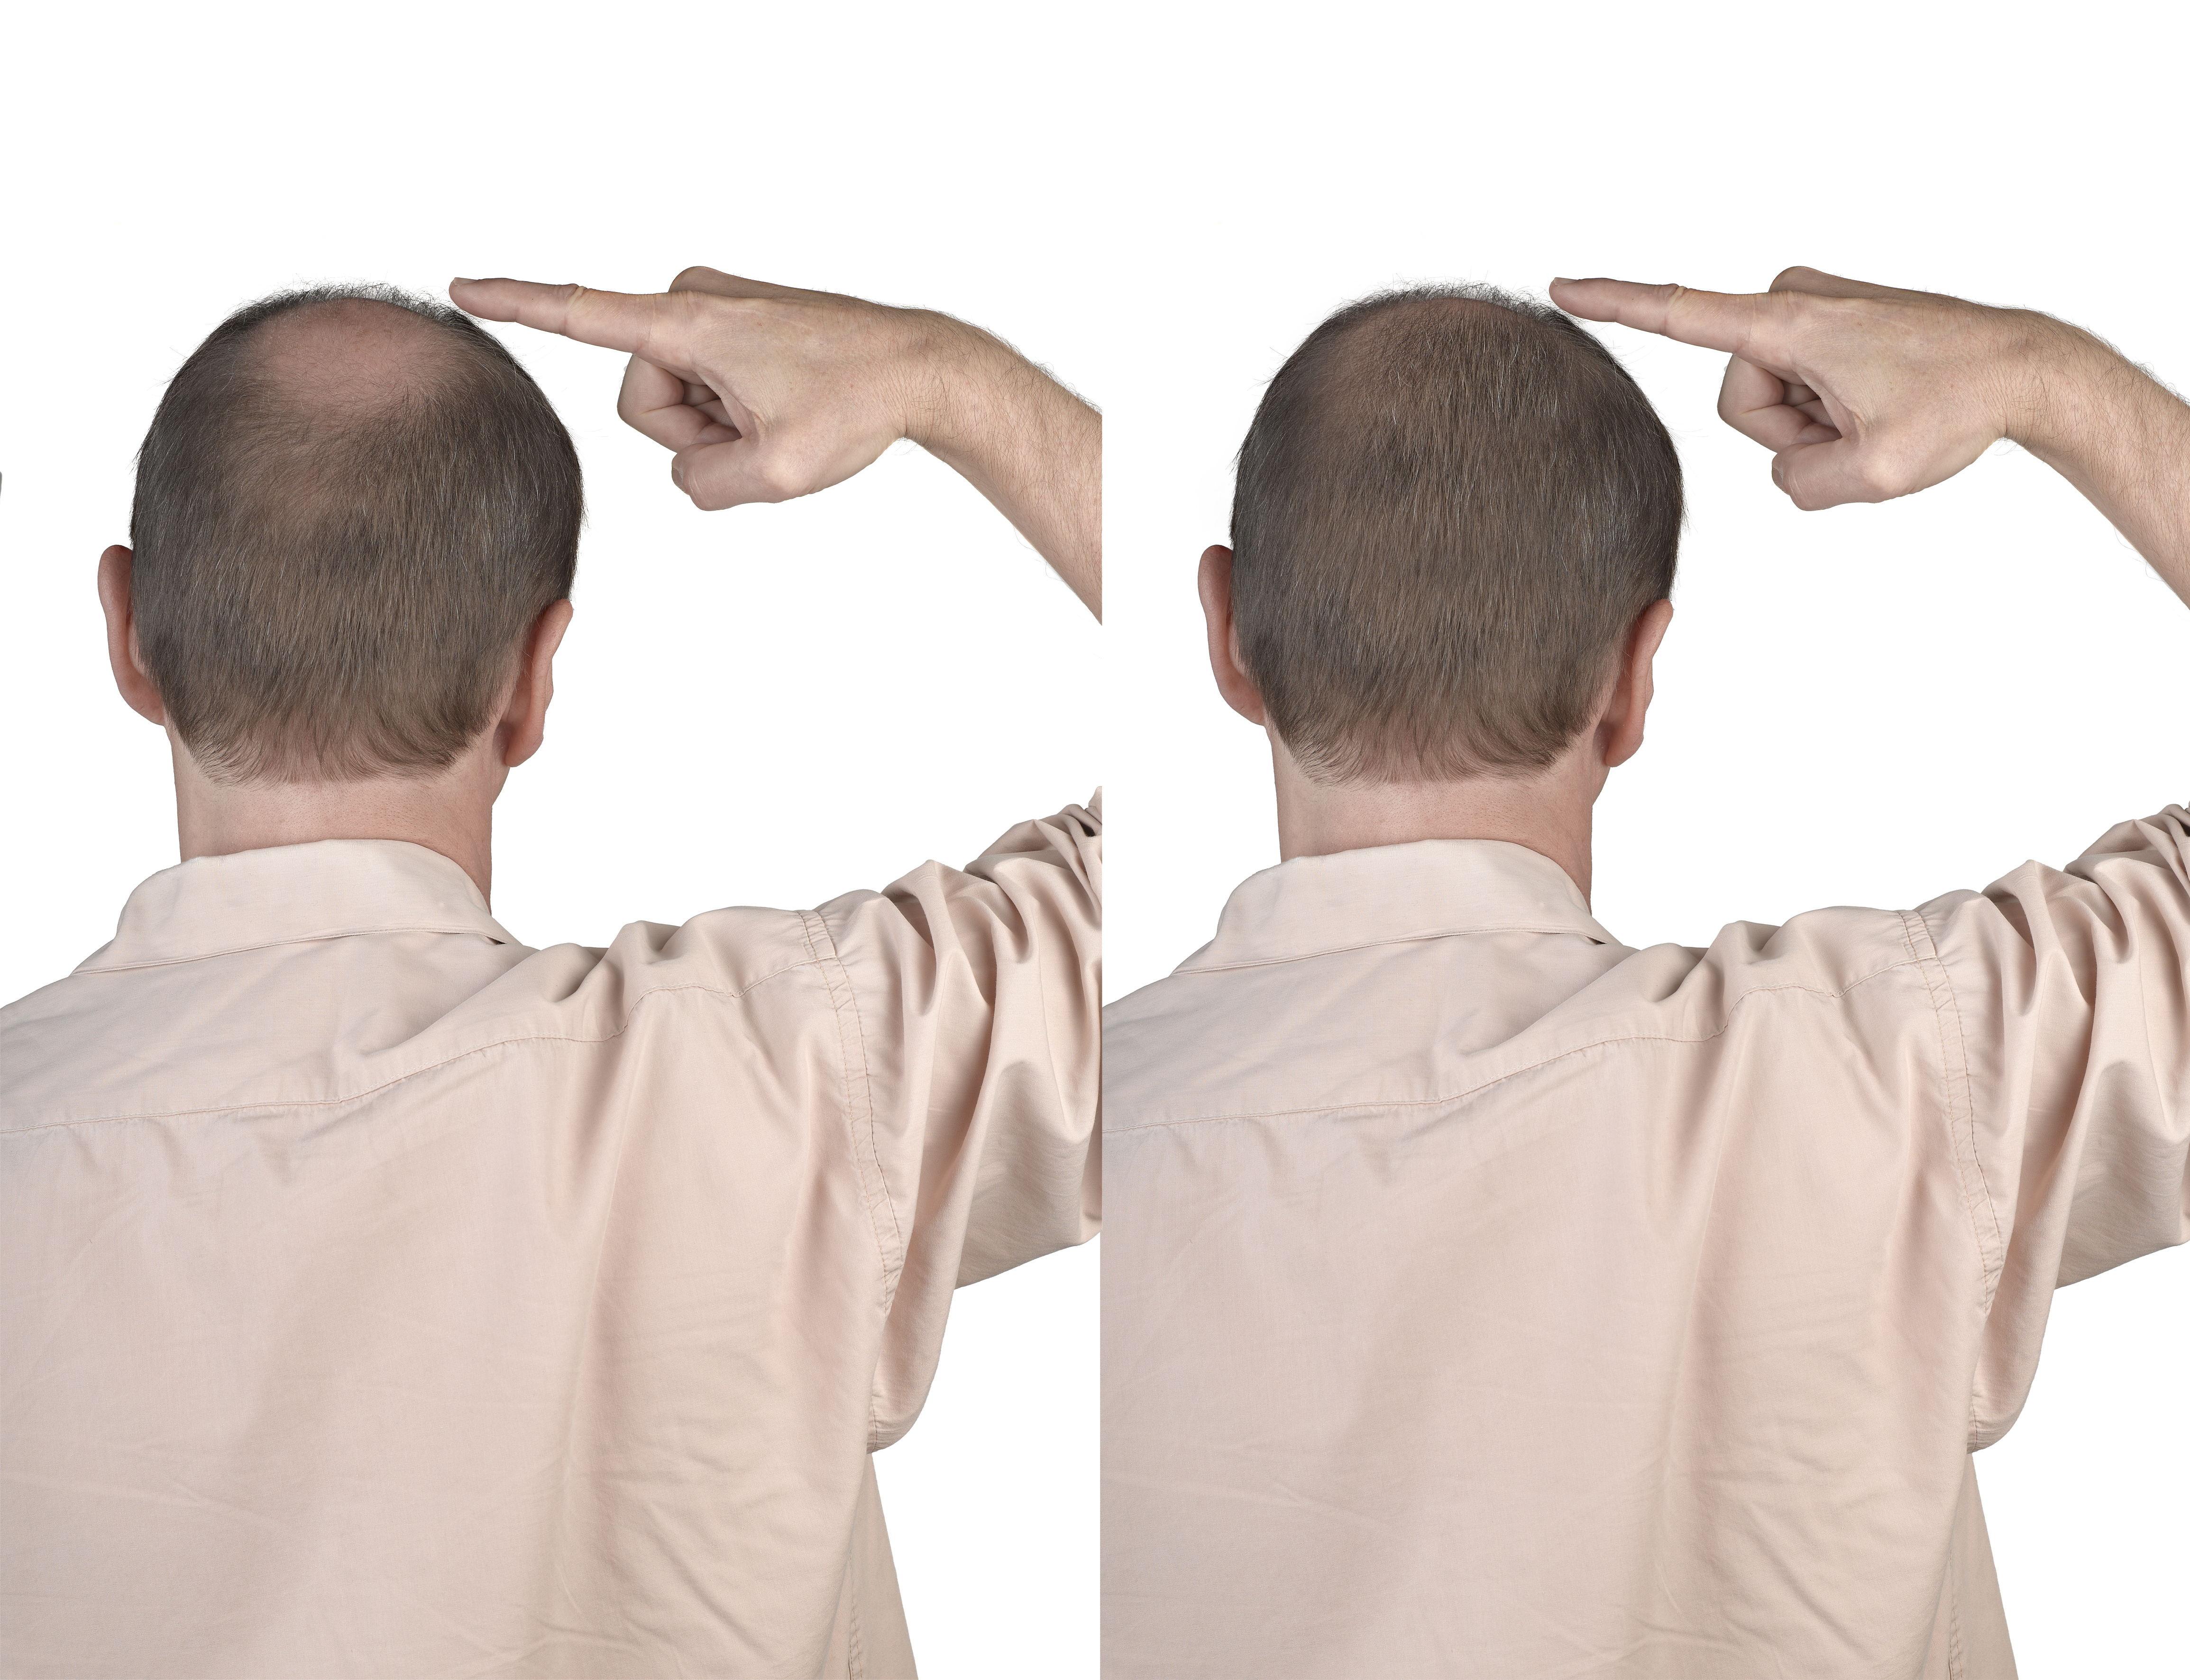 Human hair loss solution concept - adult man hand pointing his bald head